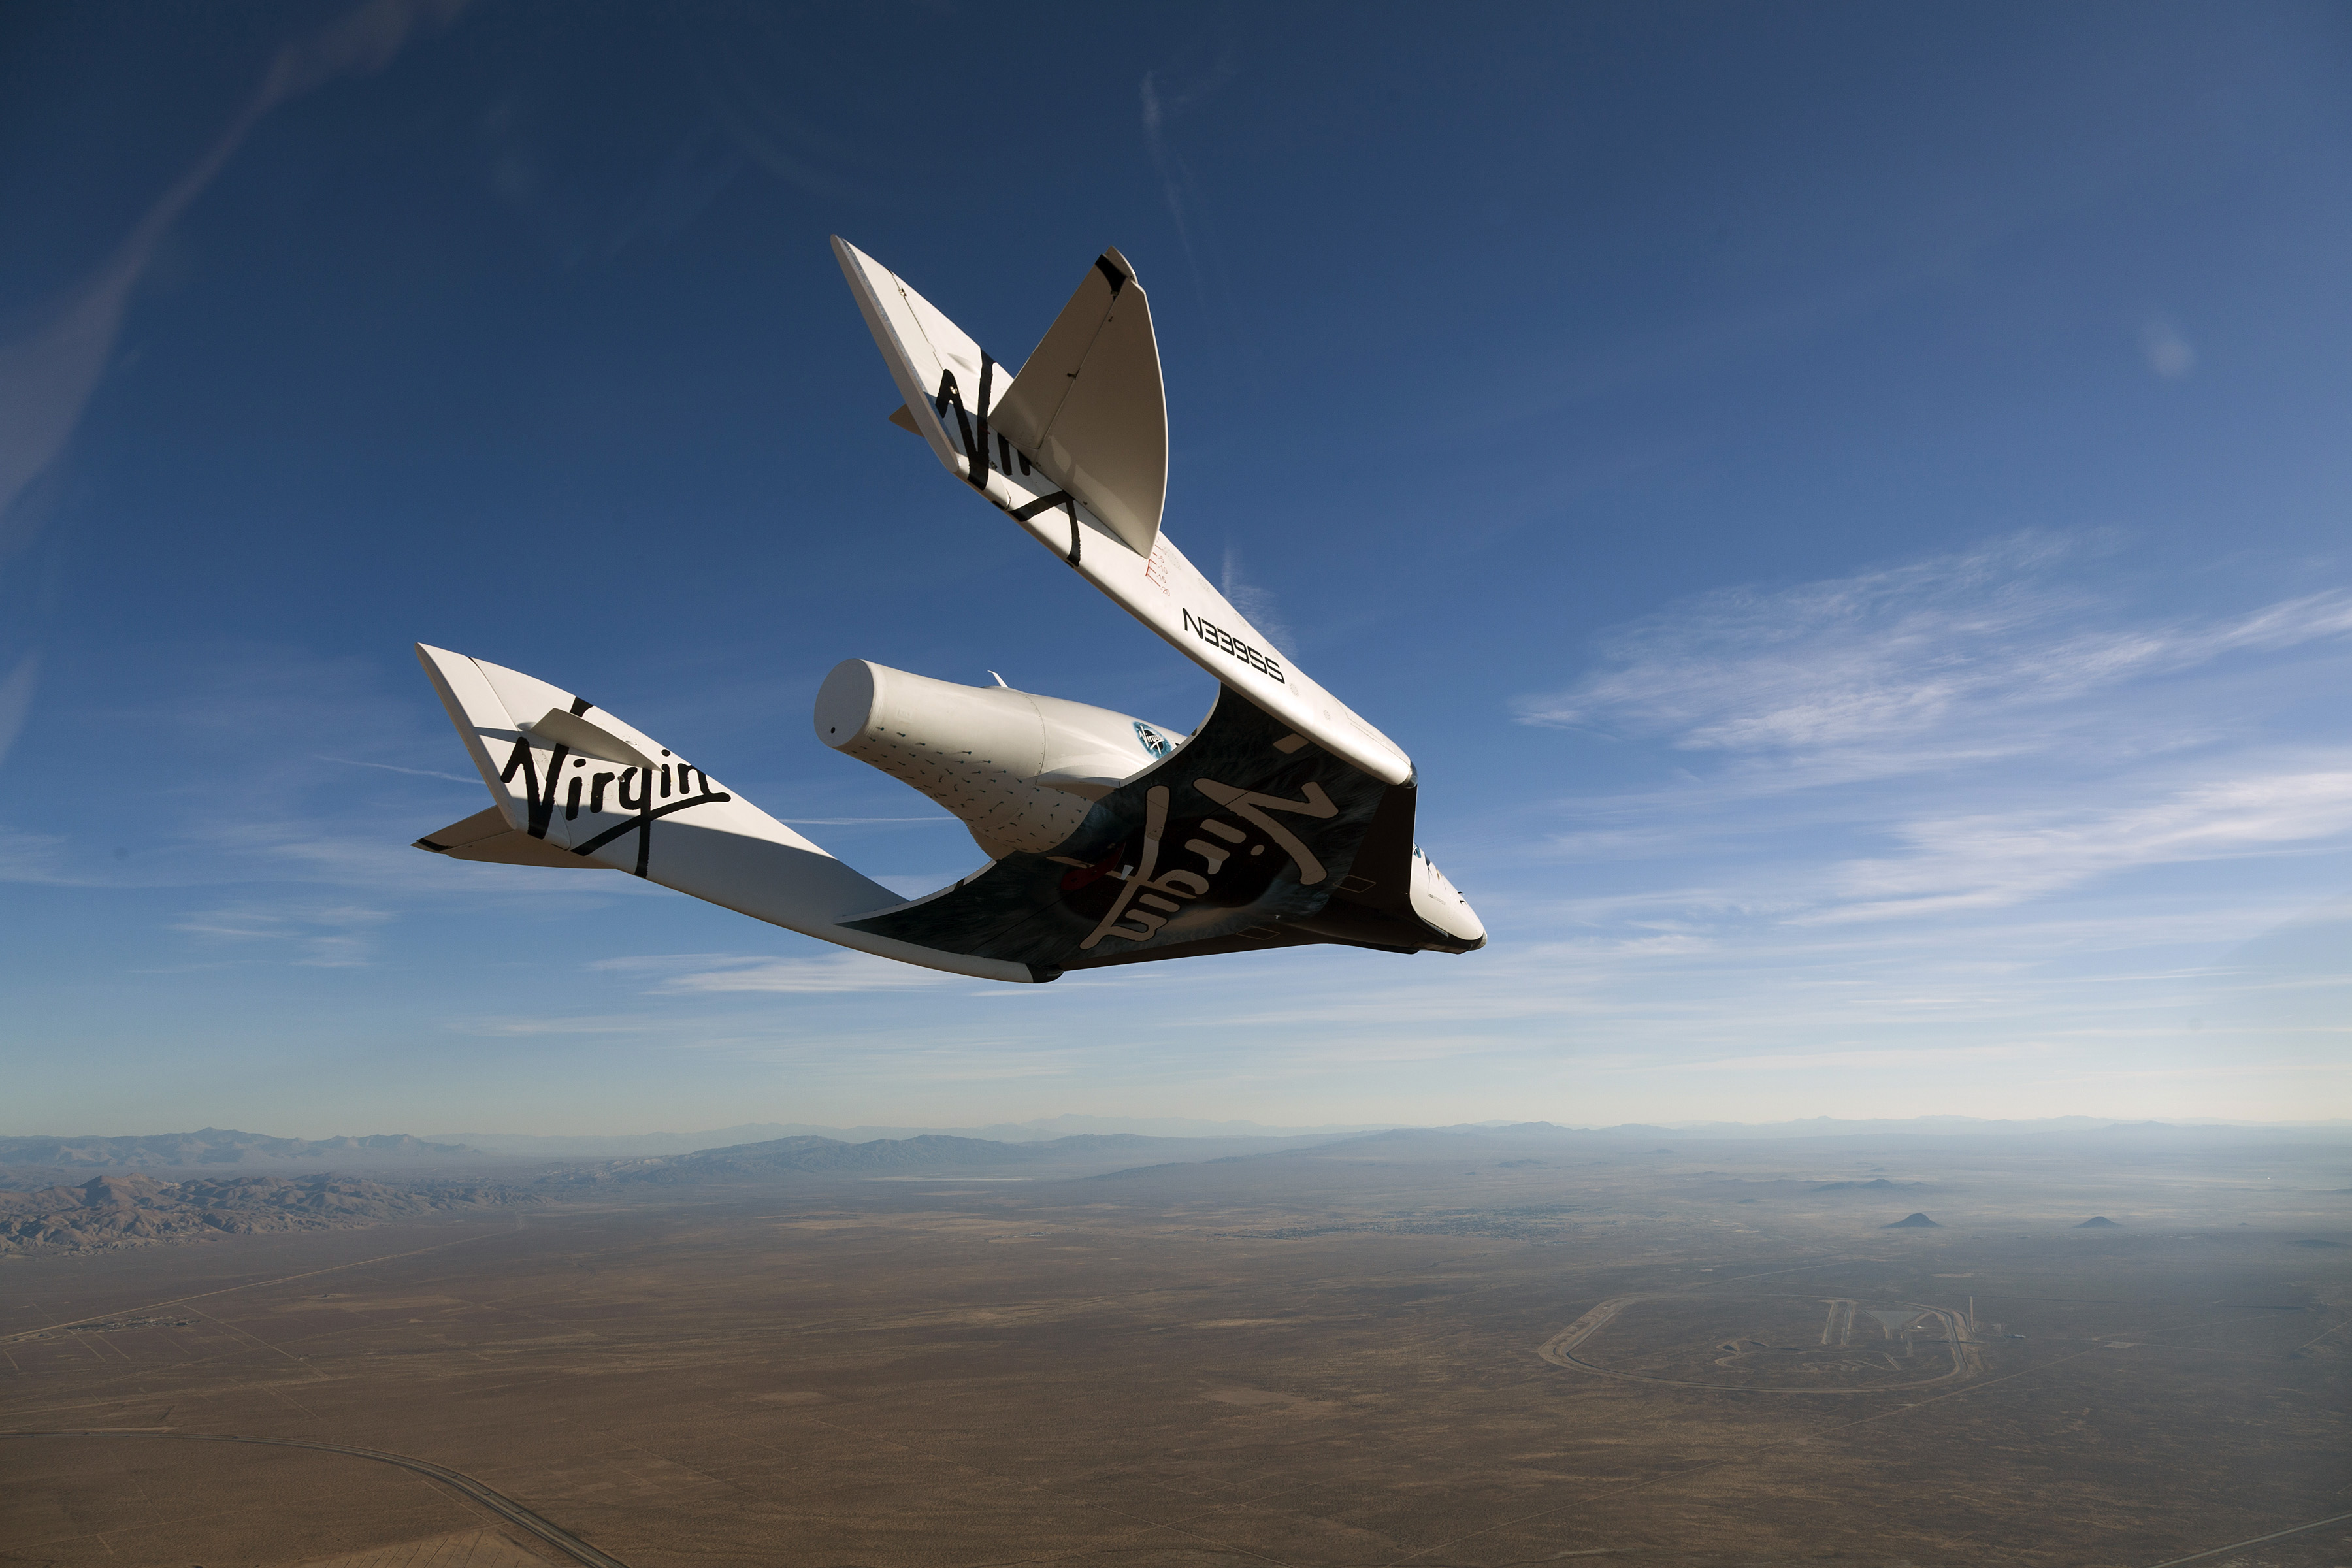 Virgin Galactic vehicle SpaceShipTwo completes it's successful first glide flight at Mojave on October 10, 2010 over Mojave in California. (Photo by Mark Greenberg/Virgin Galactic/Getty Images)